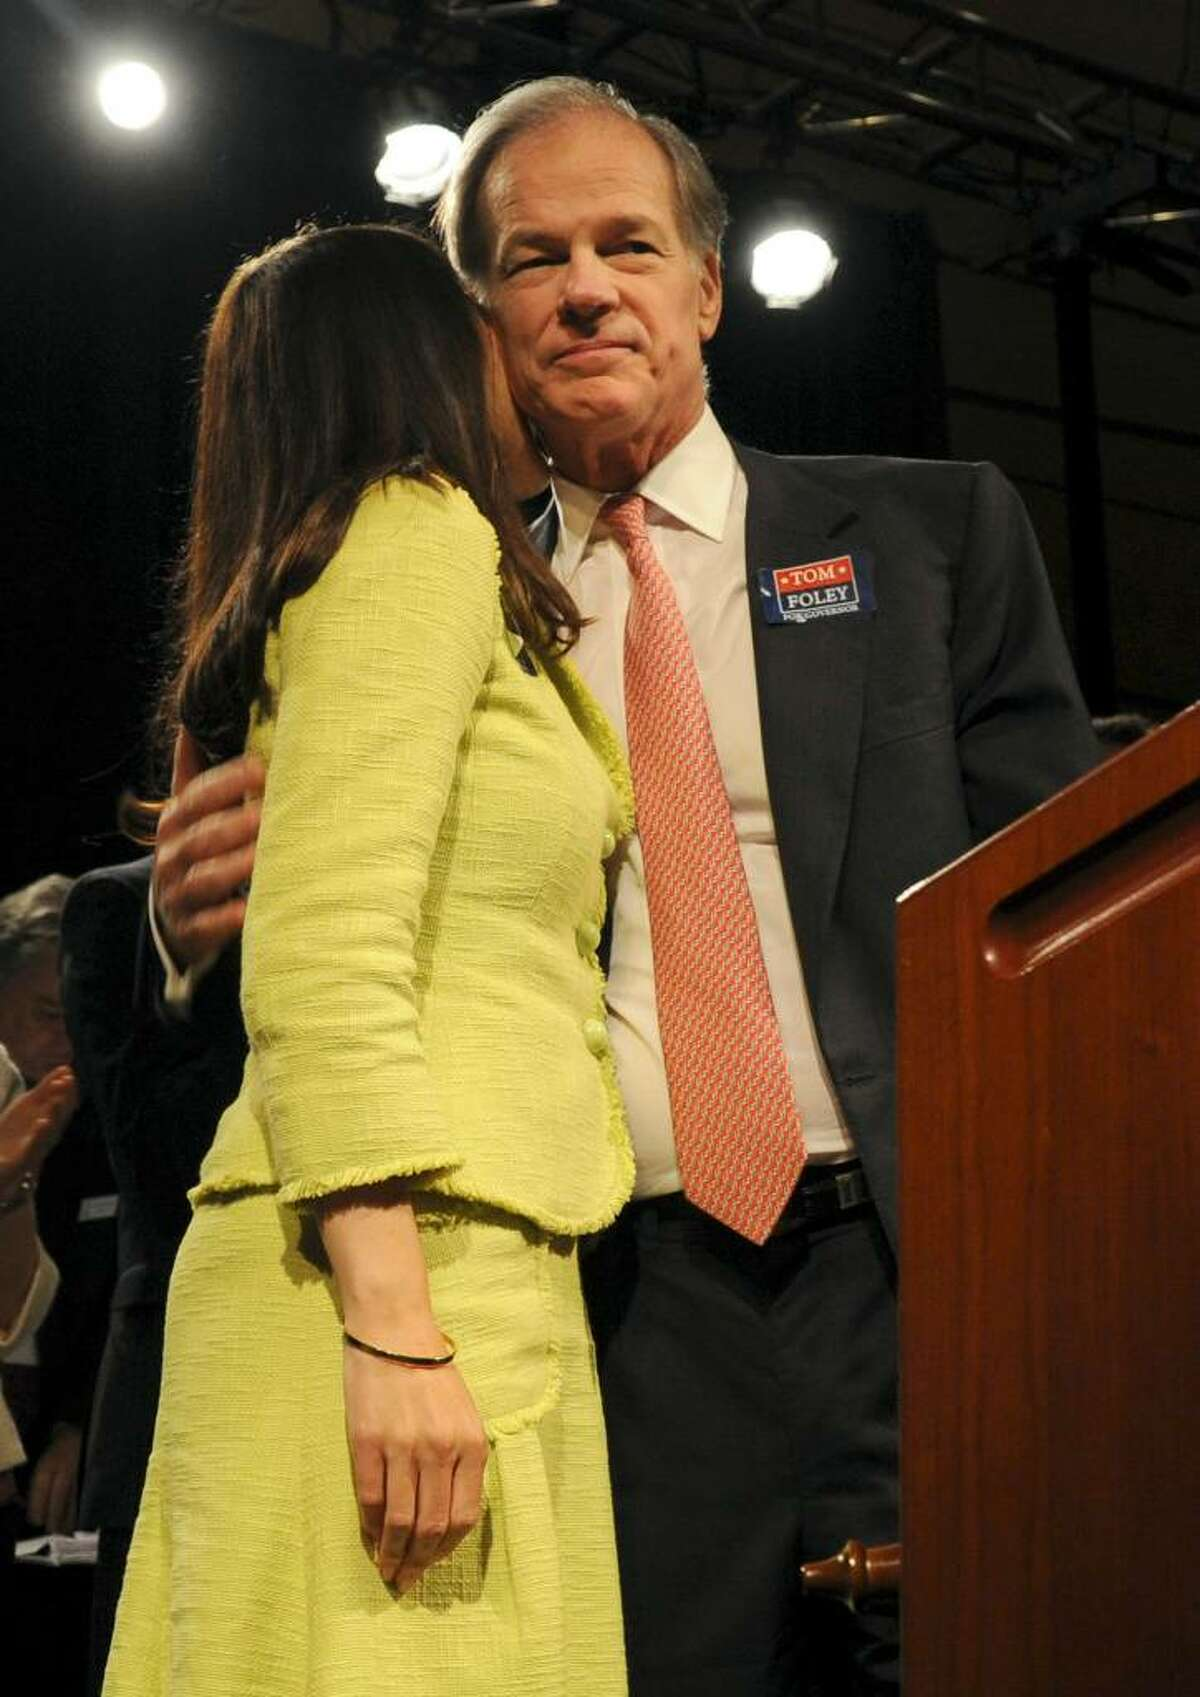 Tom Foley, nominated for governor Saturday at the Republican State Convention in Hartford, hugs his wife.